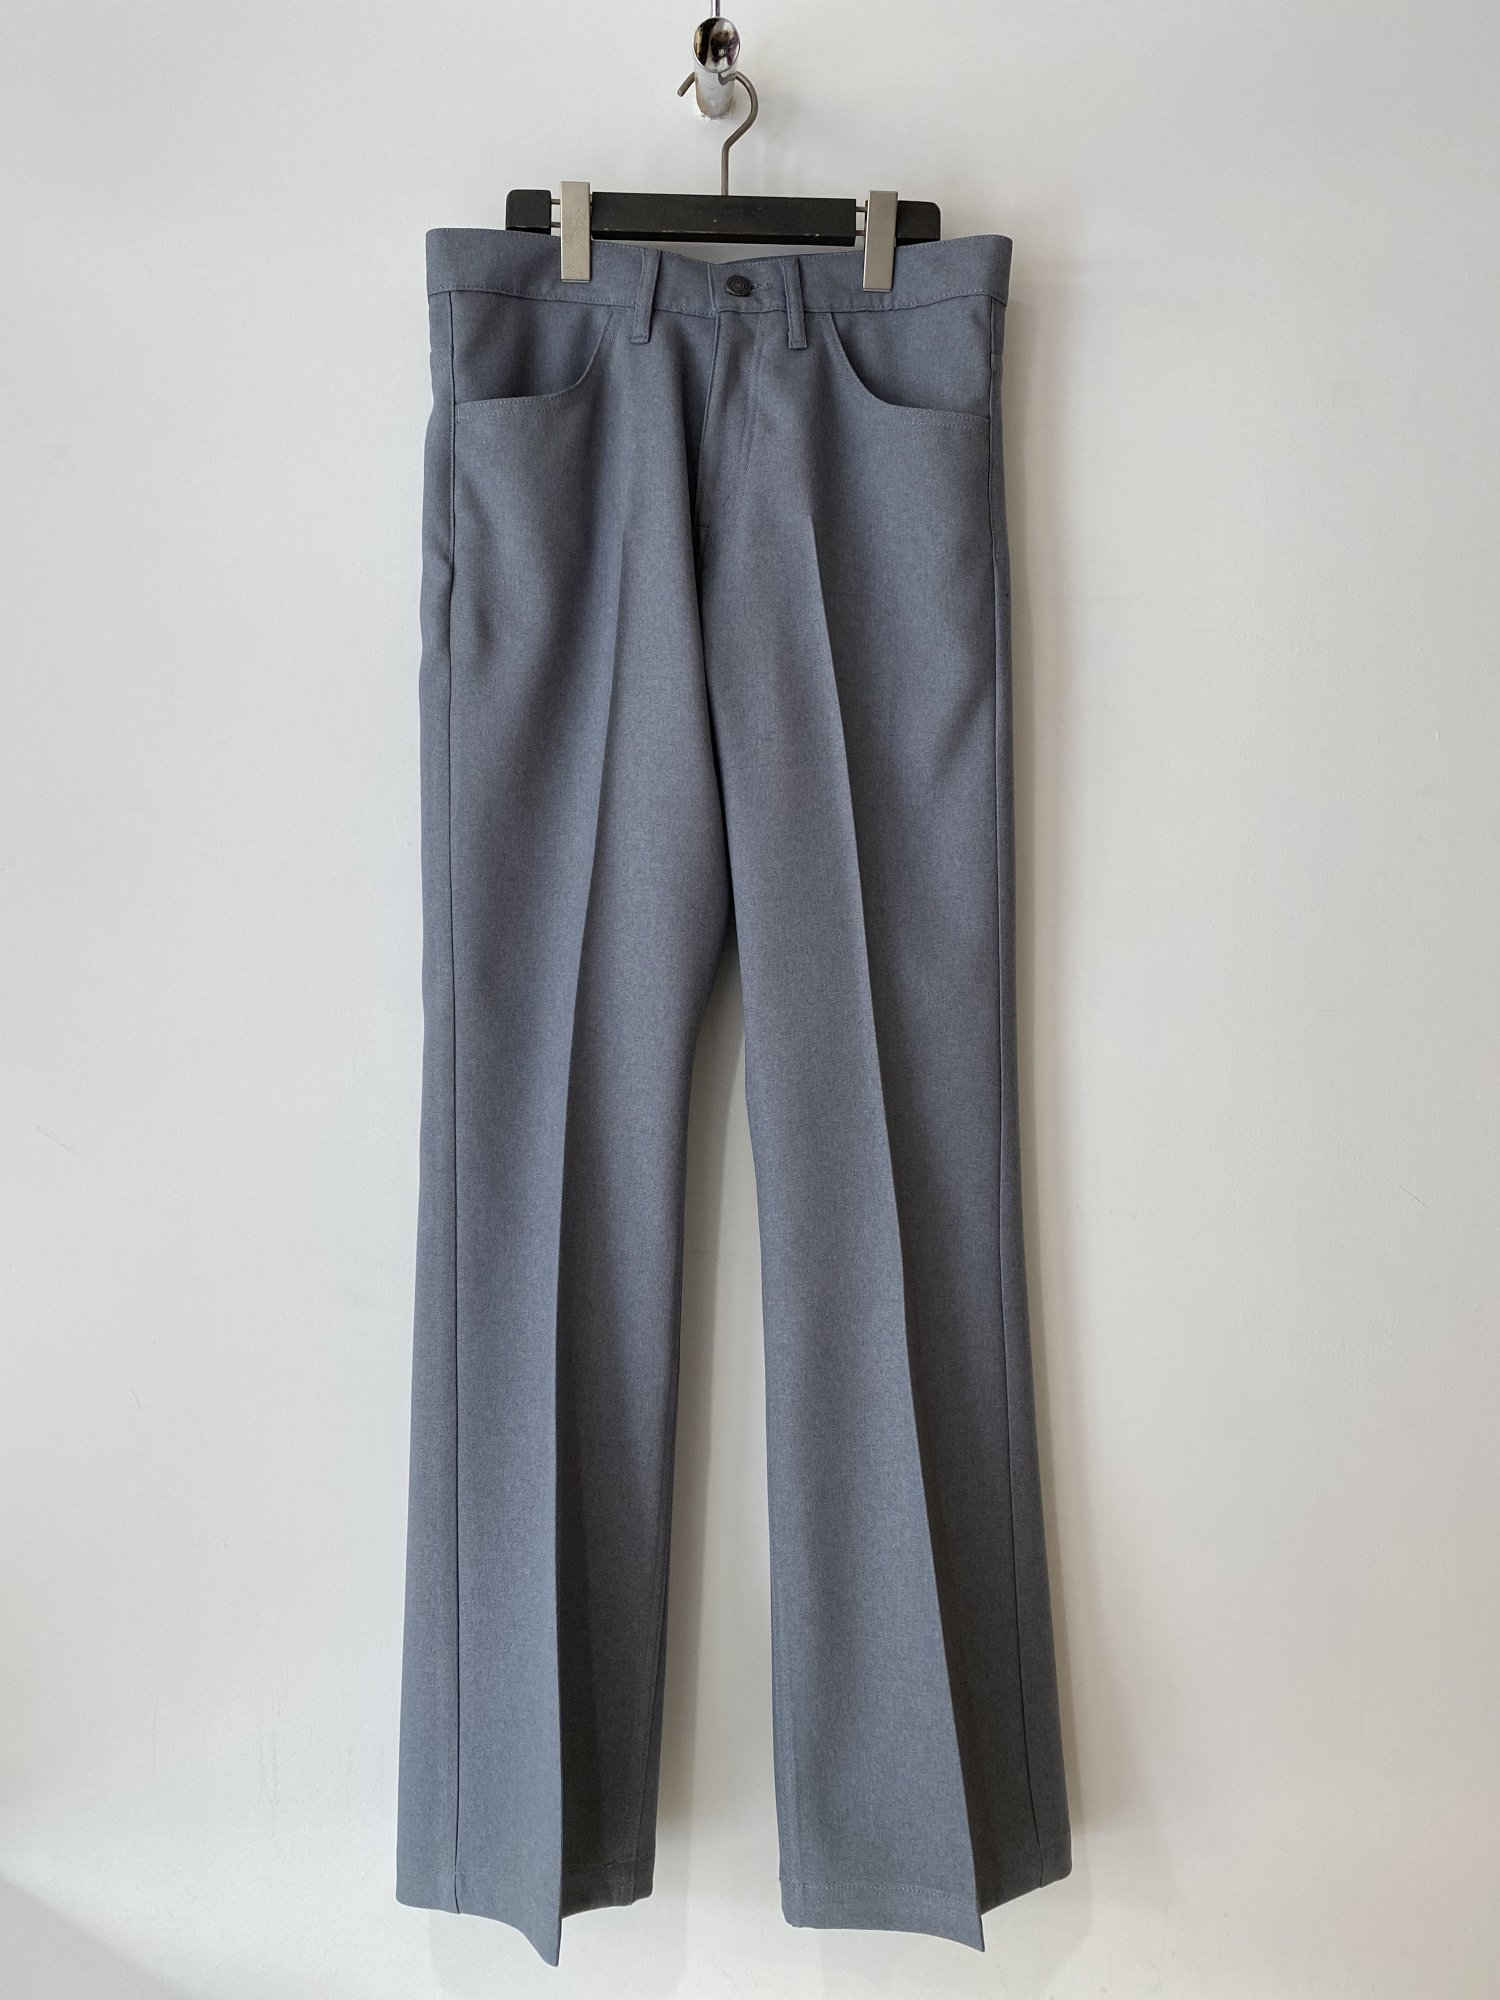 DAIRIKU<br />Flare Flasher Pressed Pants / Concrete 